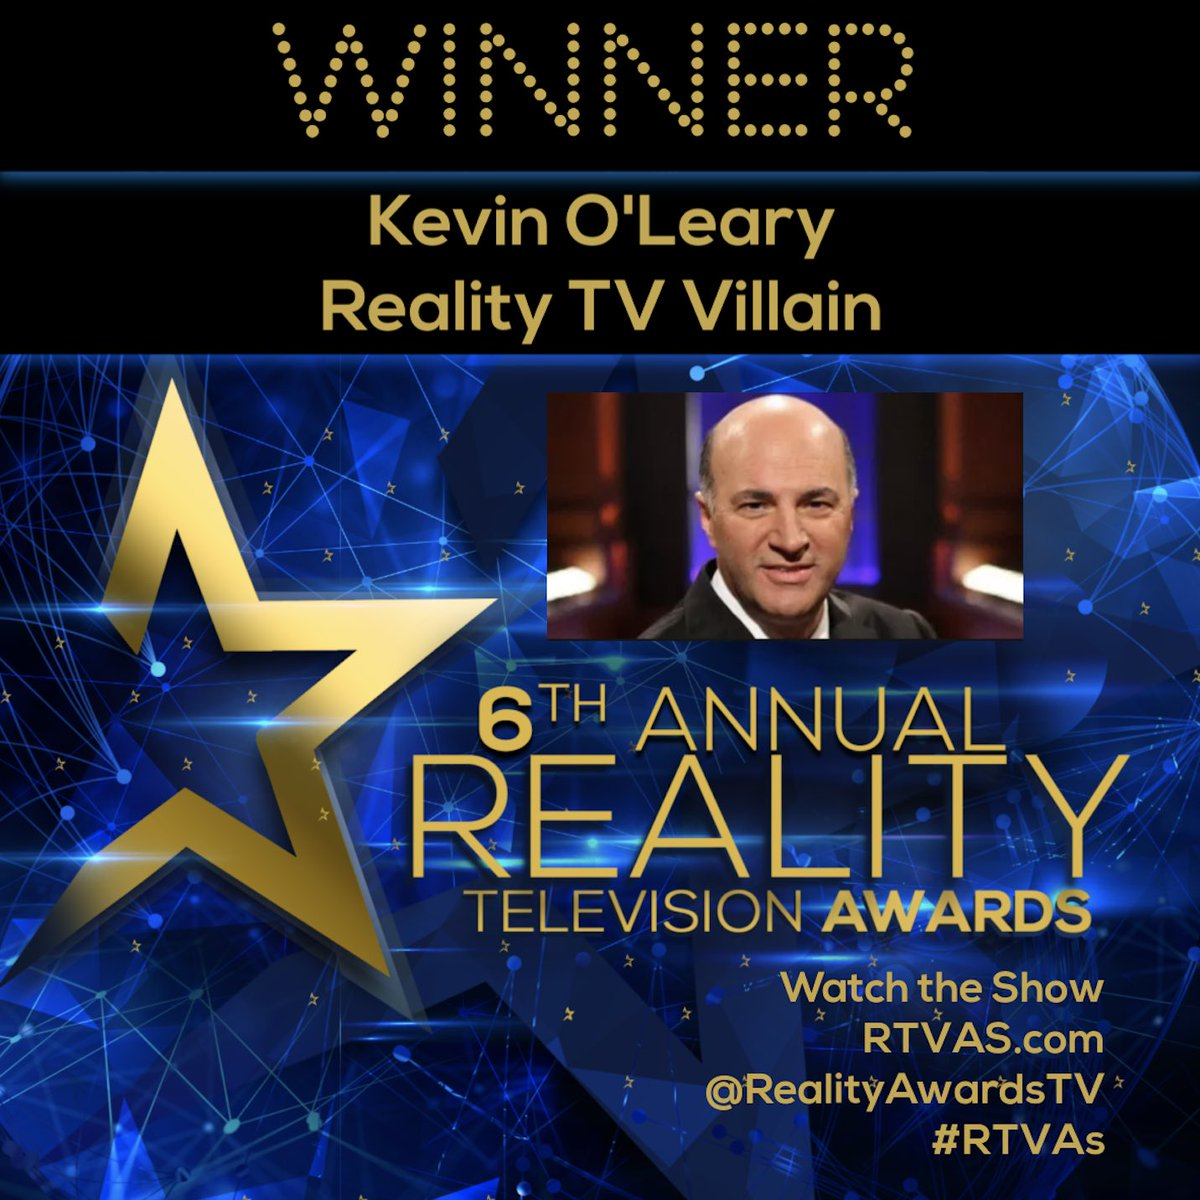 Kevin O'Leary on Twitter: